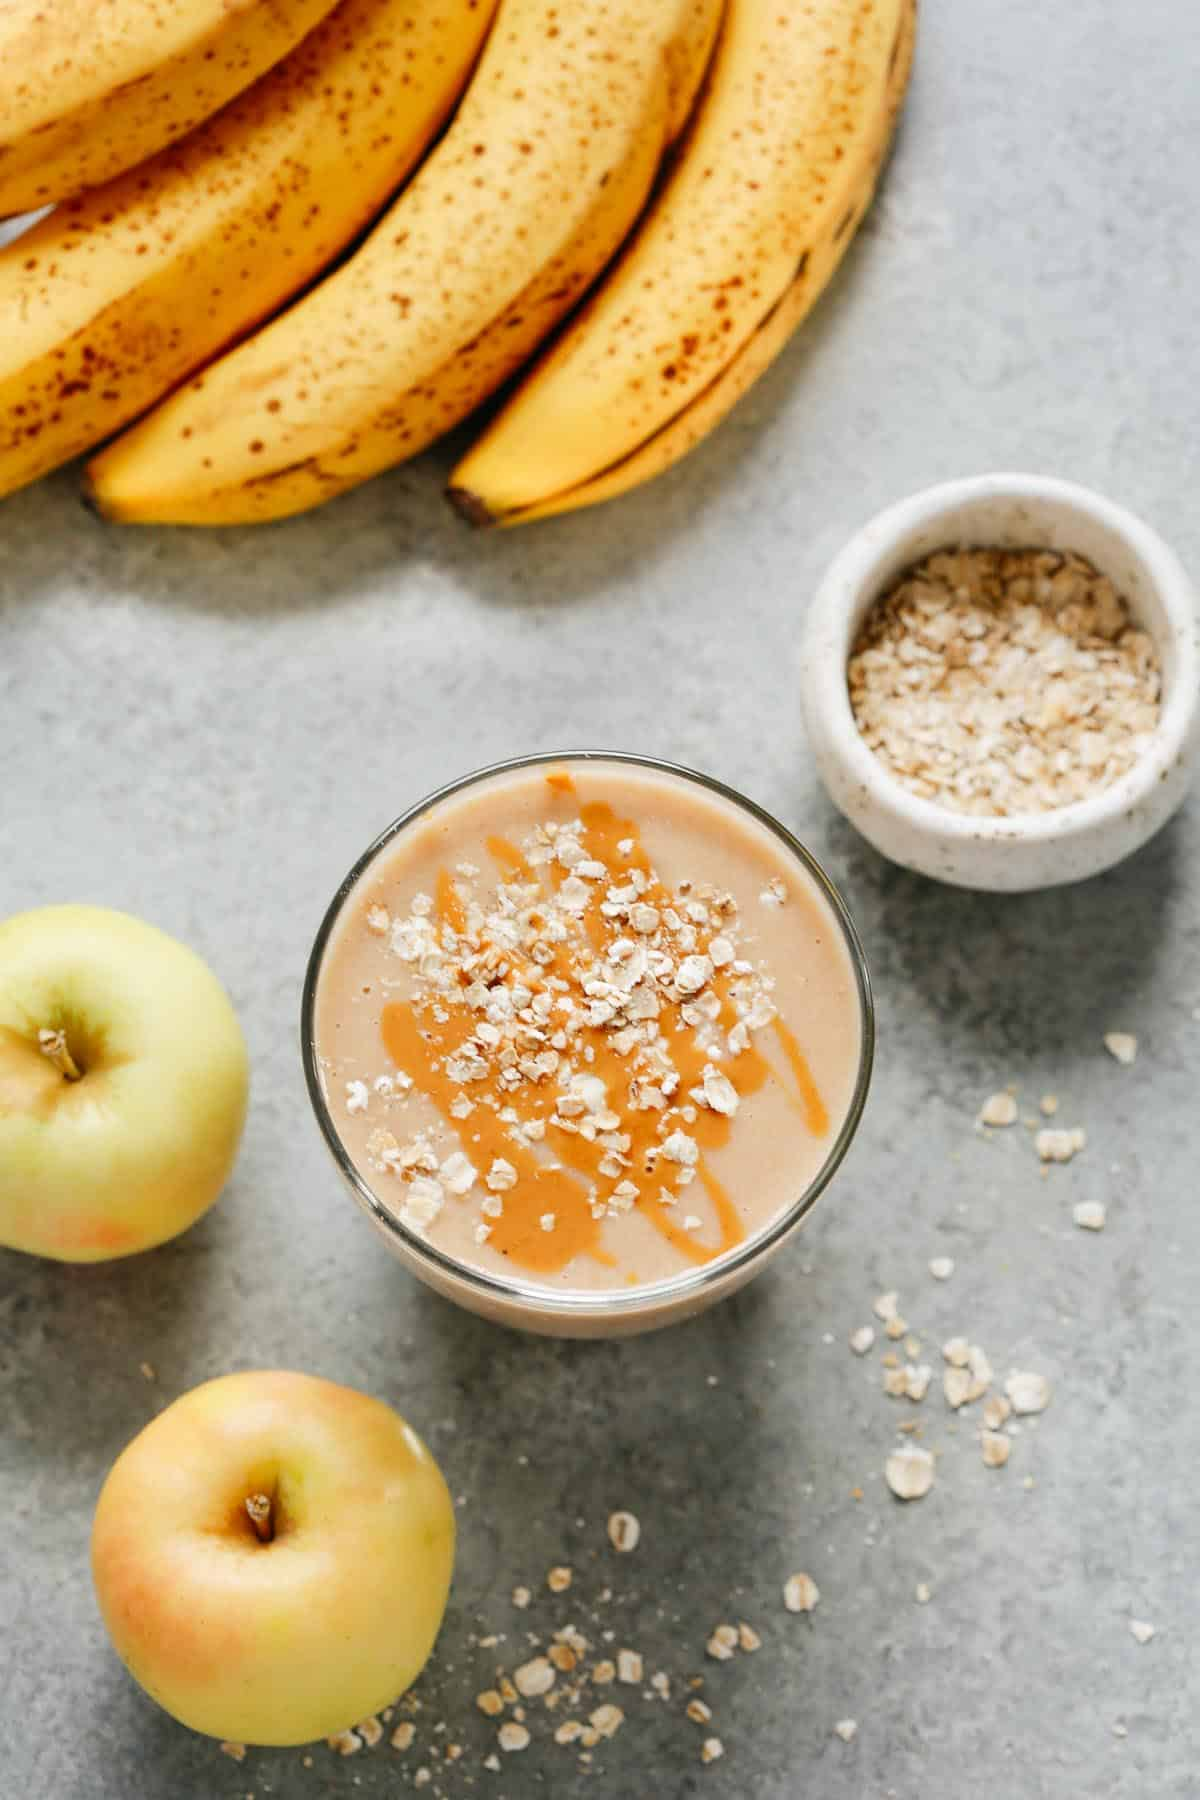 cup of apple smoothie with oats sprinkled on top with bananas, apples, and oats placed beside it